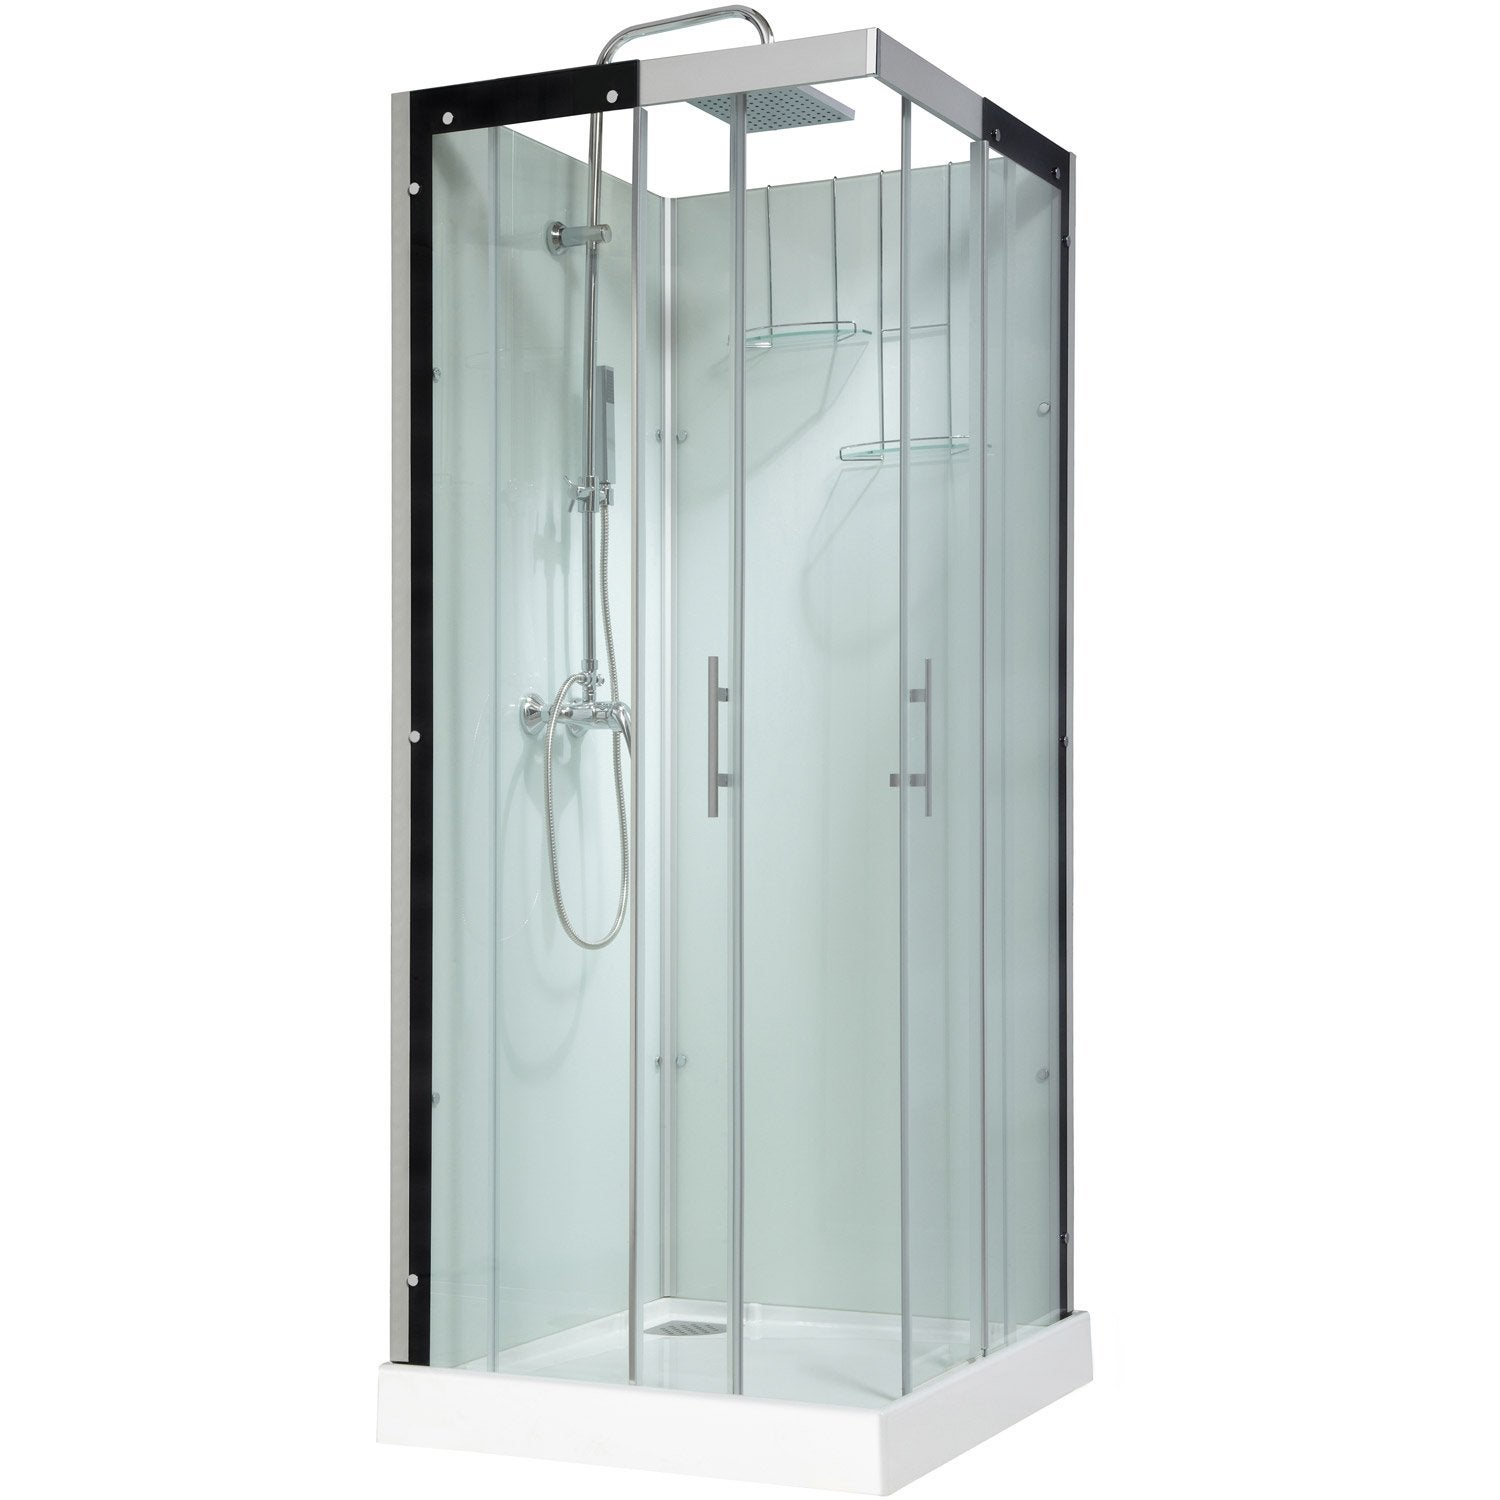 cabine de douche carr 80x80 cm thalaglass 2 mitigeur leroy merlin. Black Bedroom Furniture Sets. Home Design Ideas